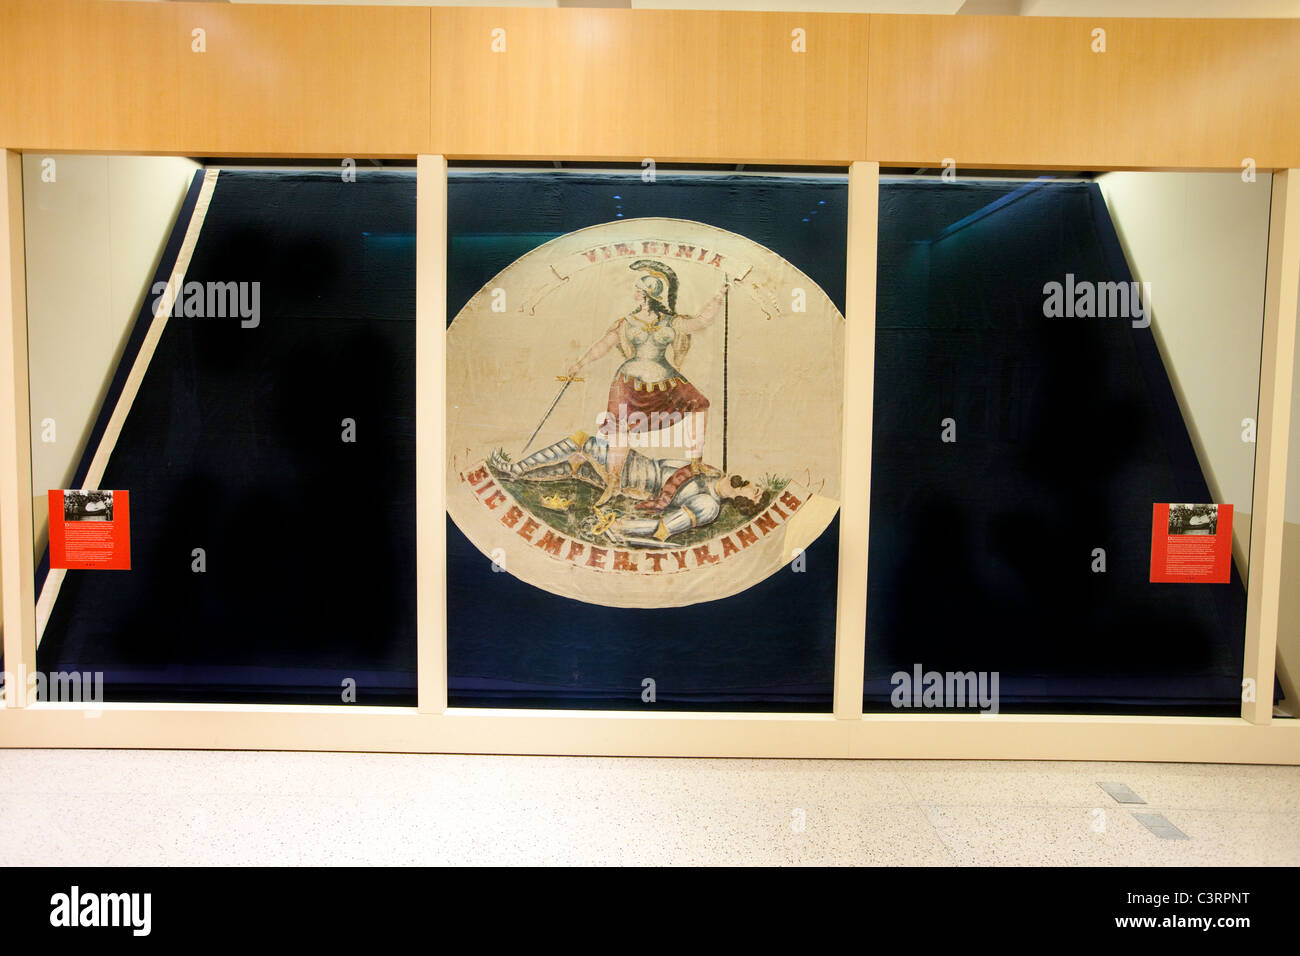 State flag that flew over the capitol during its capture in 1865, inside the state capitol building Richmond, VA - Stock Image